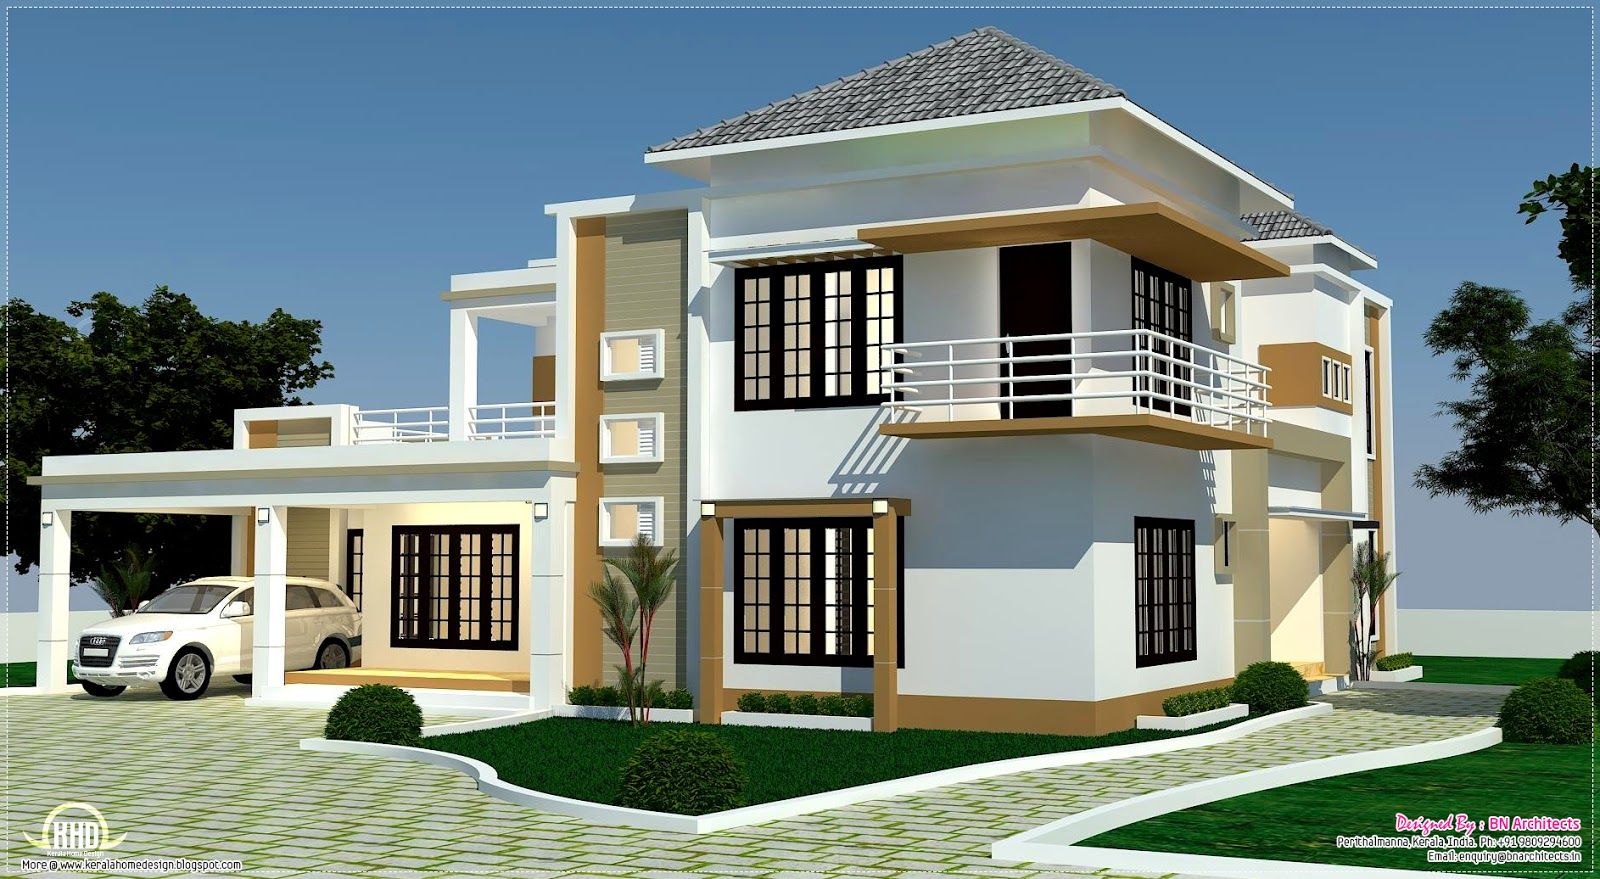 Floor plan 3d views and interiors of 4 bedroom villa for 2 story villa floor plans